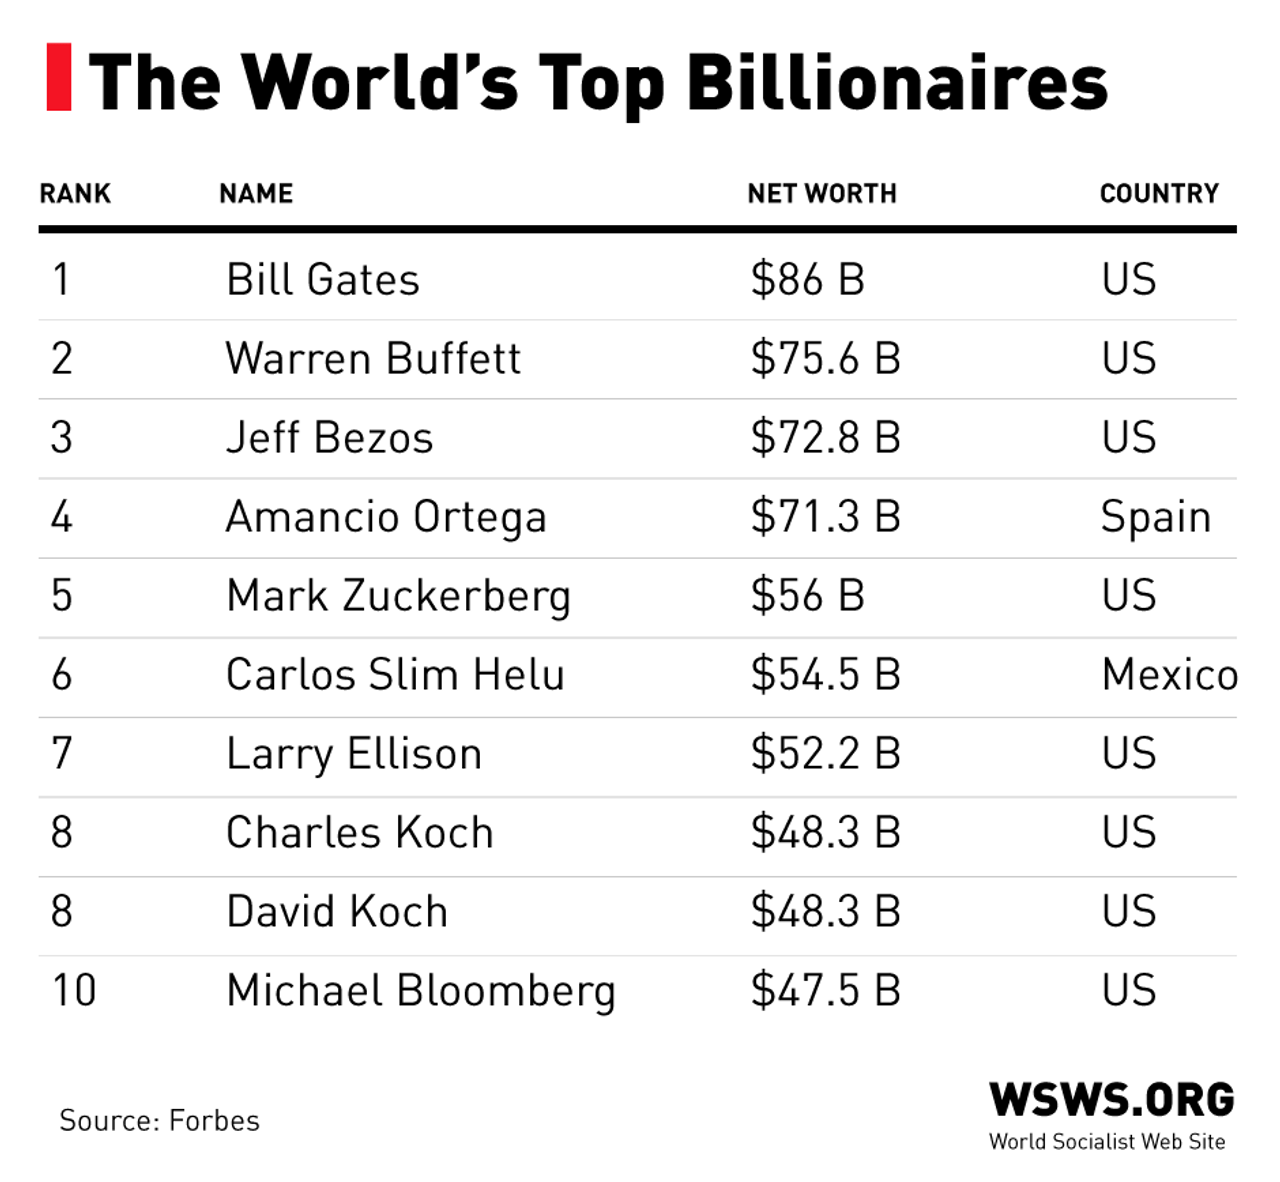 The world's top billionaires